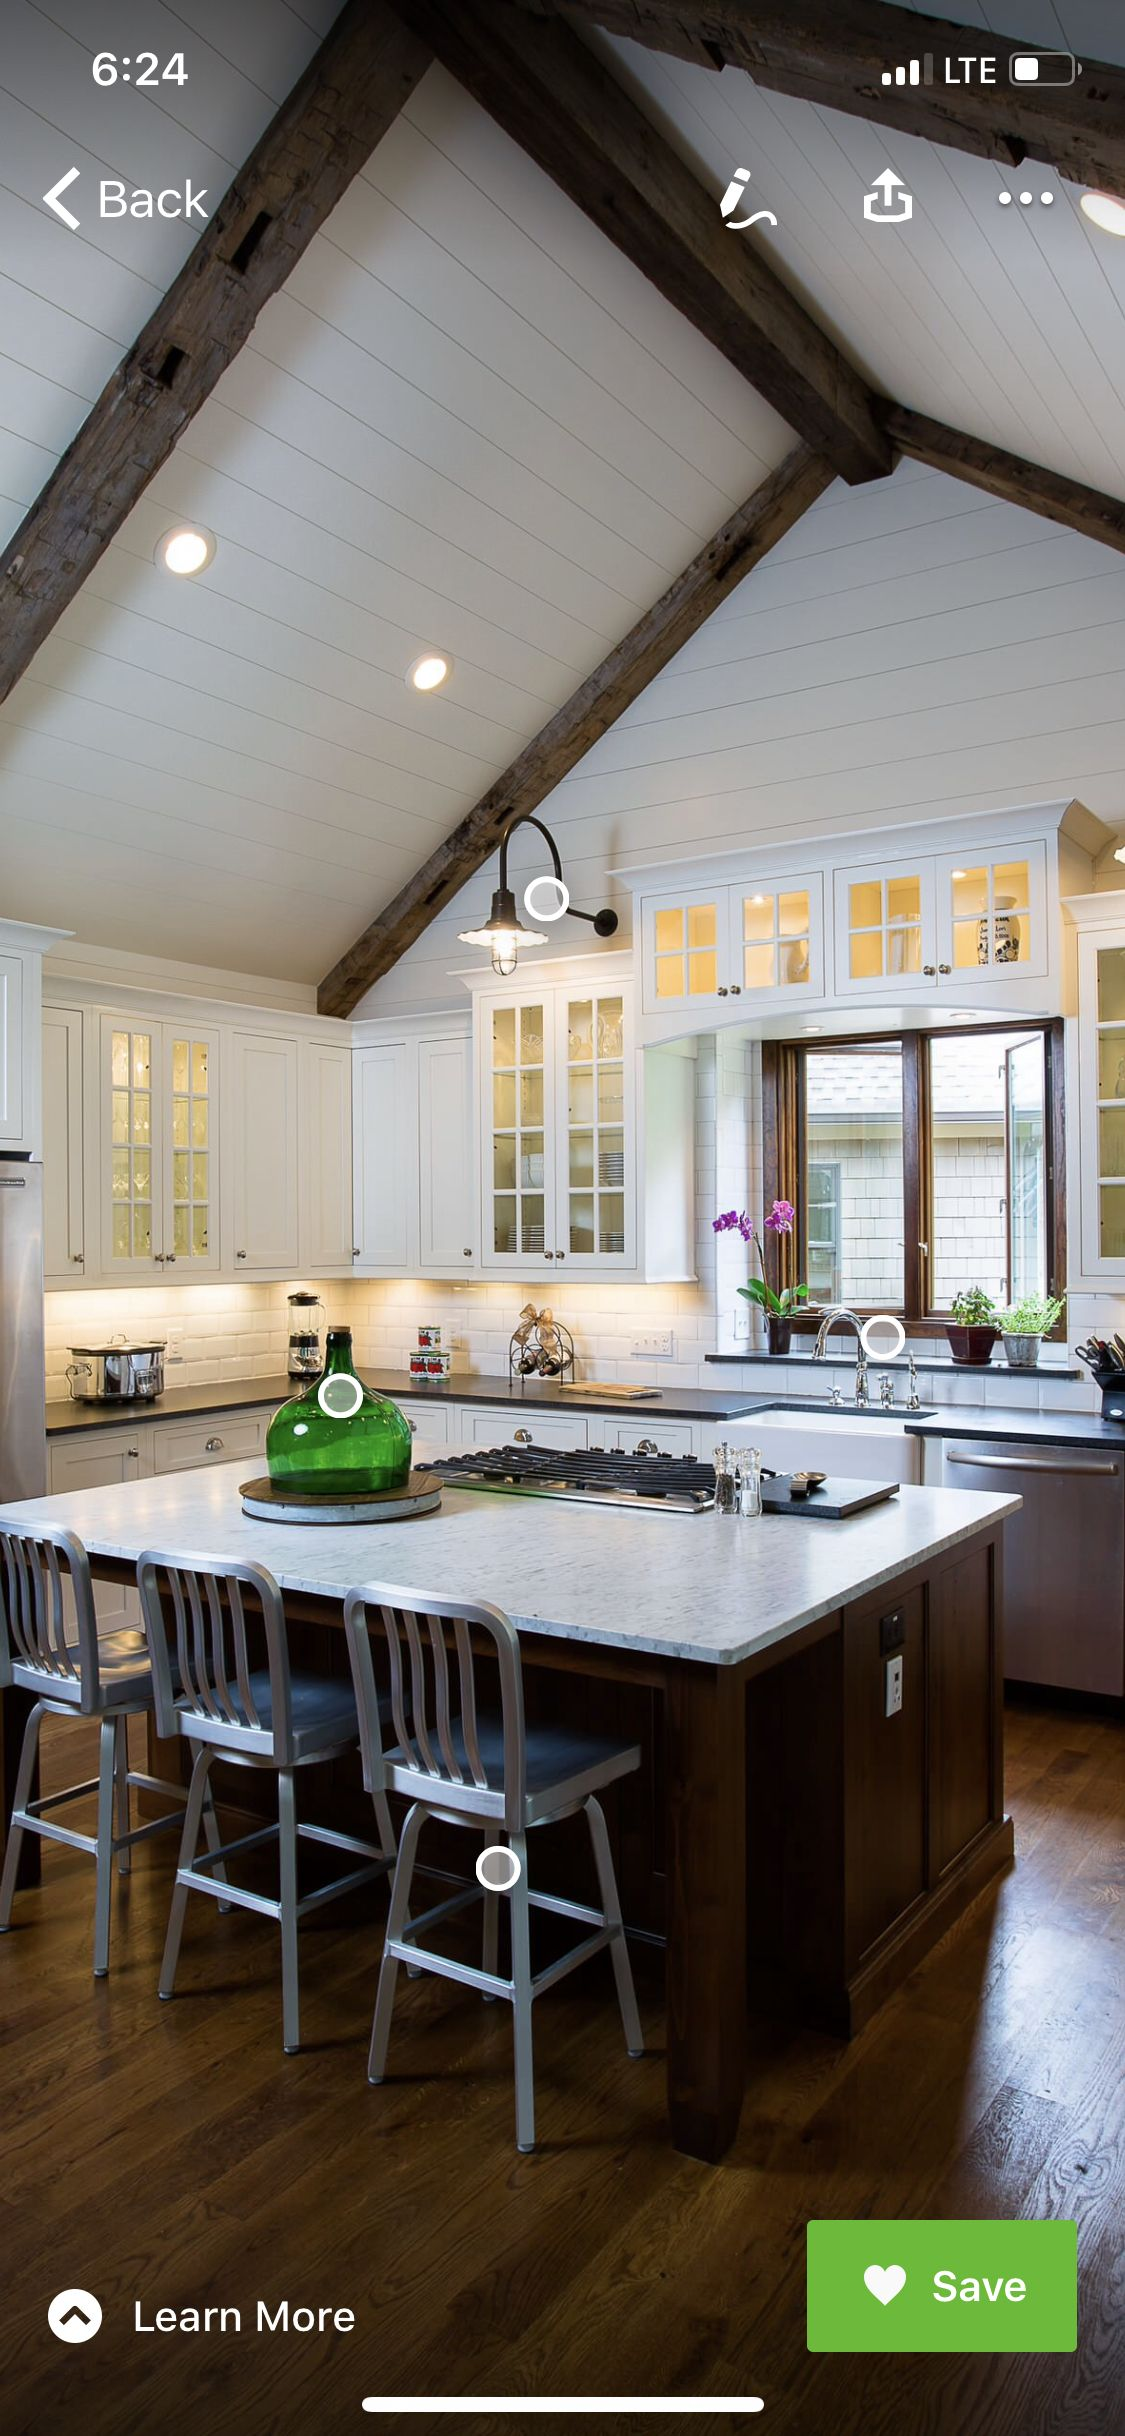 pin by susan sieja on 1154 ashland vaulted ceiling kitchen rustic kitchen kitchen ceiling on kitchen cabinets vaulted ceiling id=56884